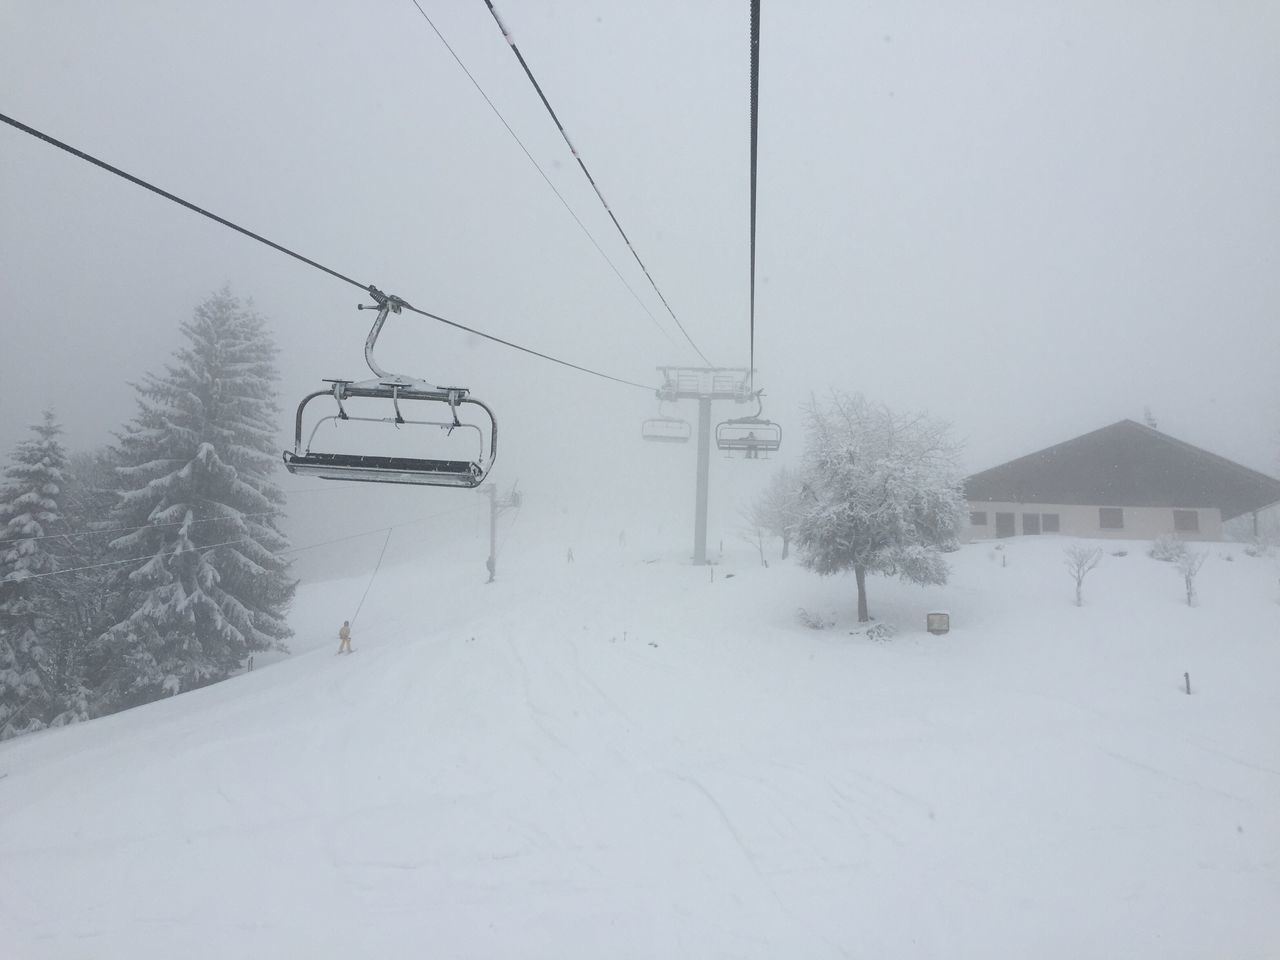 Overhead Cable Cars On Snow Covered Landscape